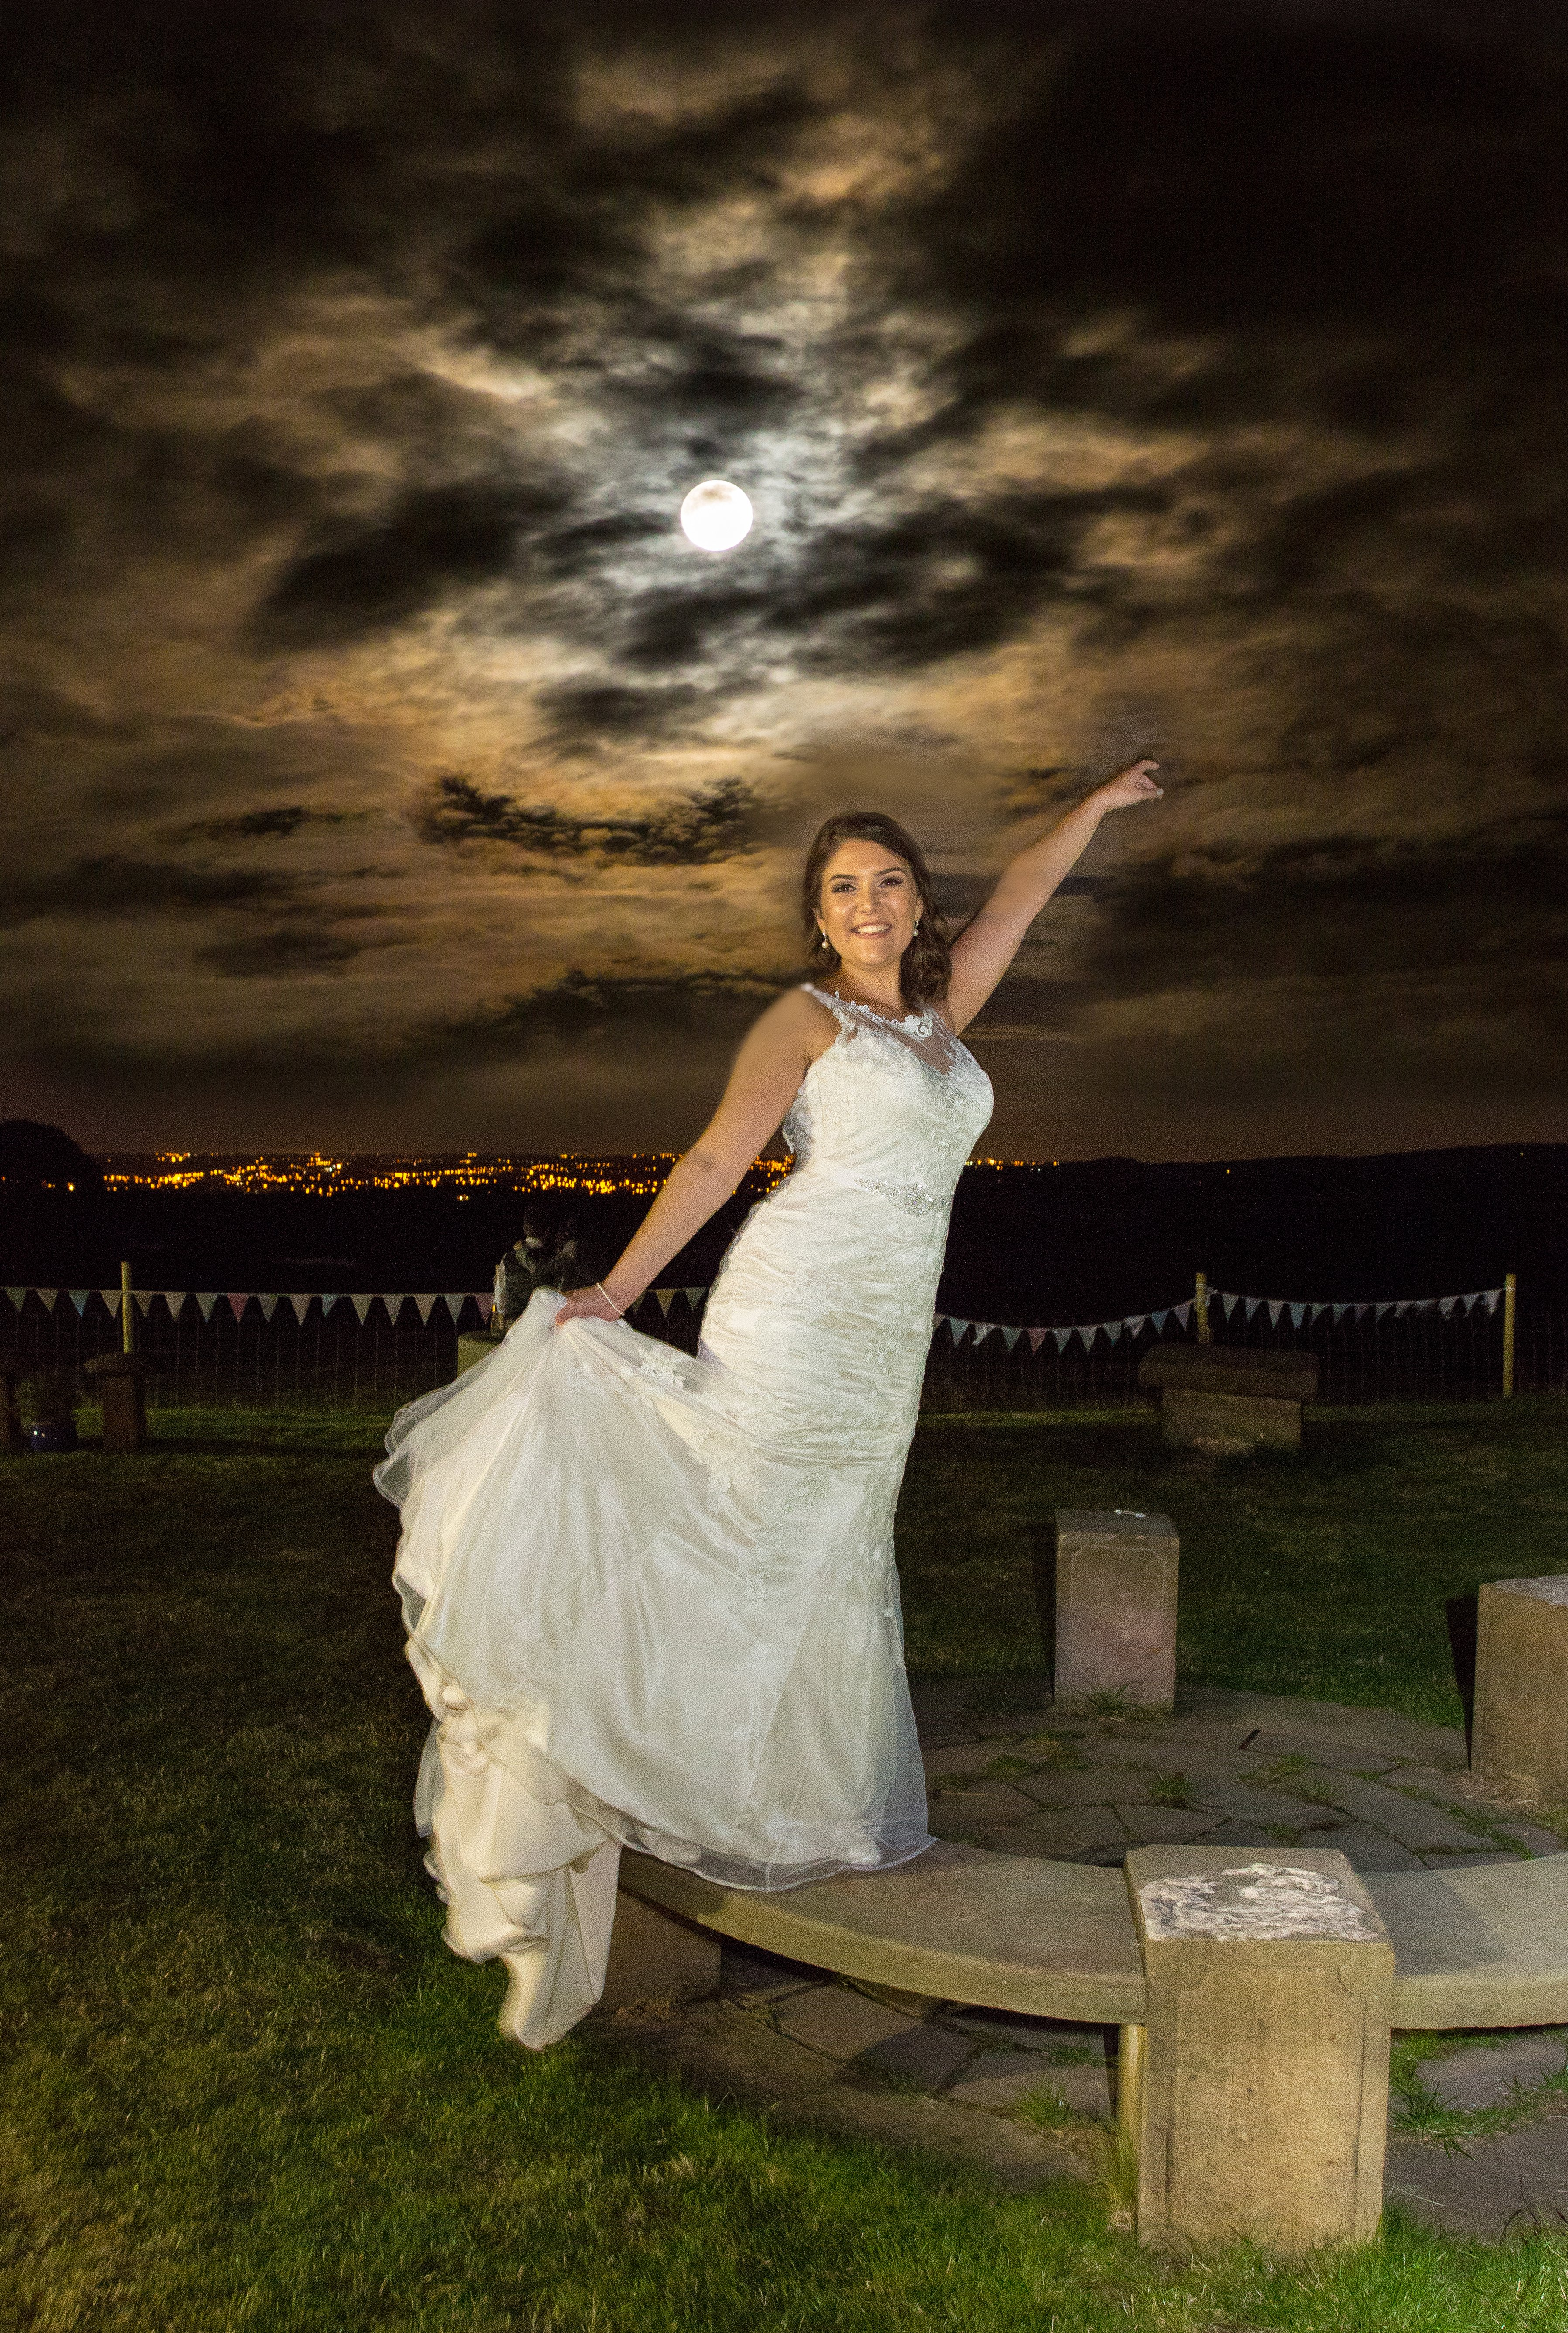 A bride posing at dusk, with lights and darkening sky behind her